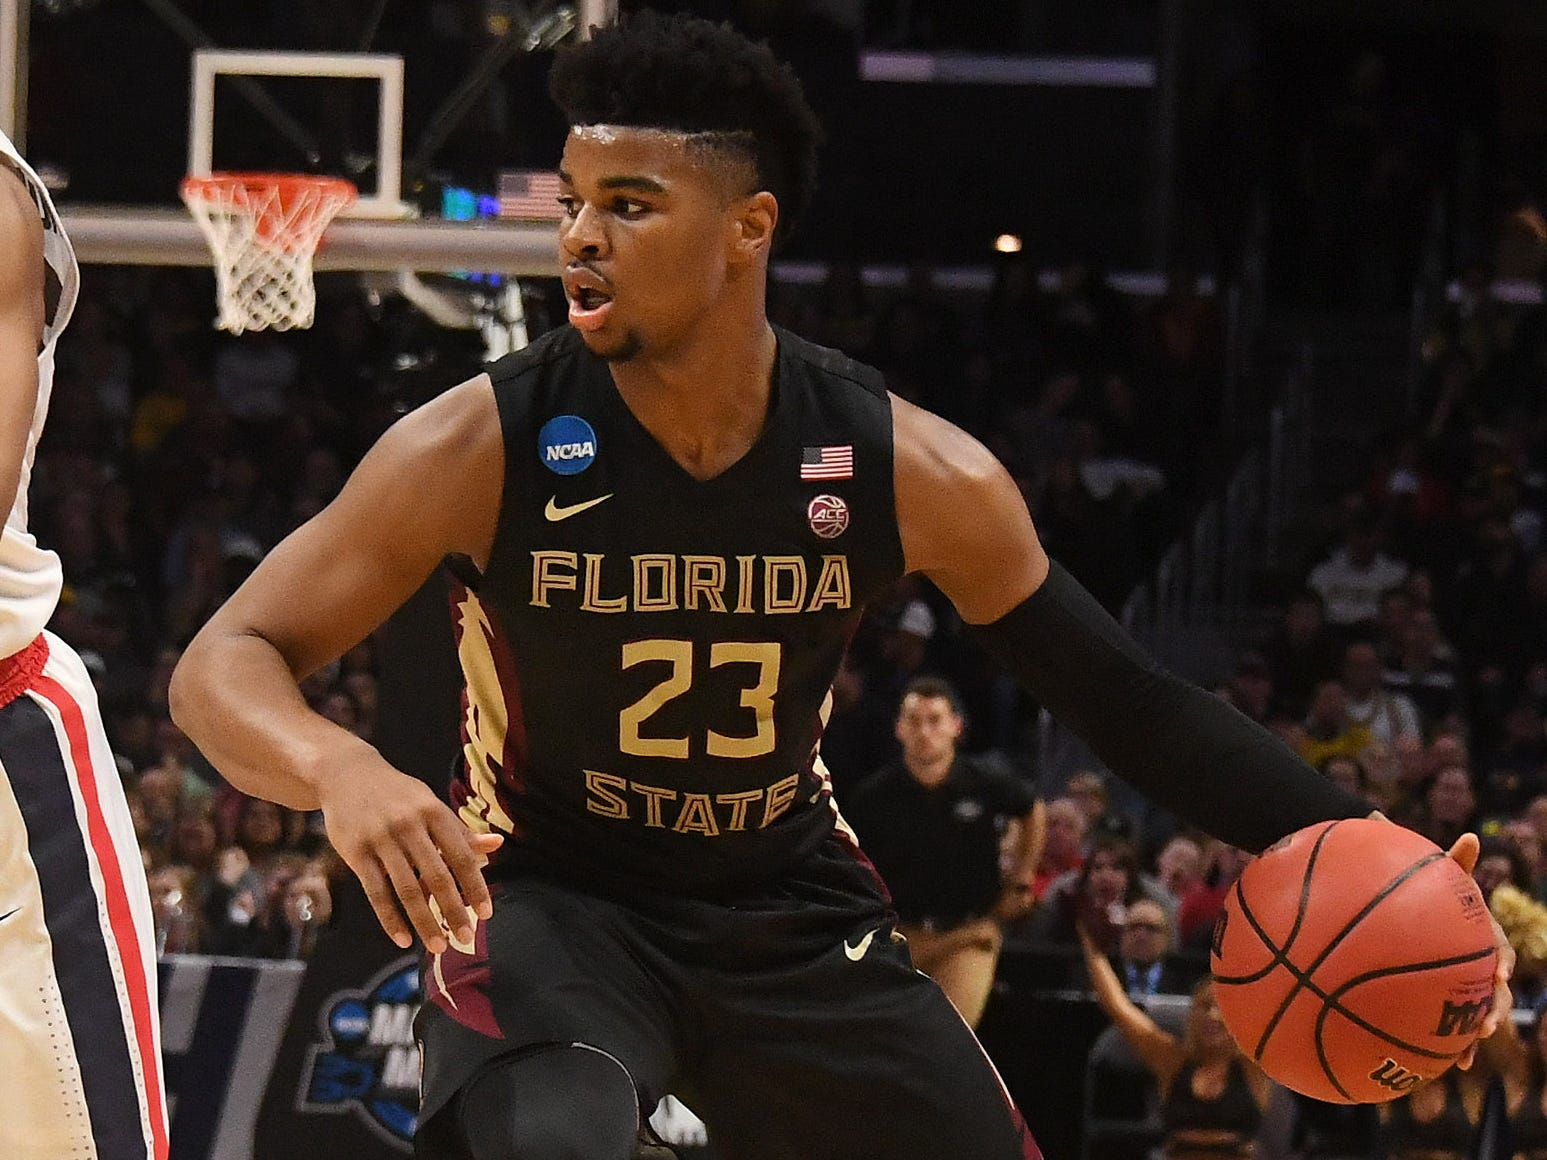 No. 15 Florida State (23-12 in 2017-18).